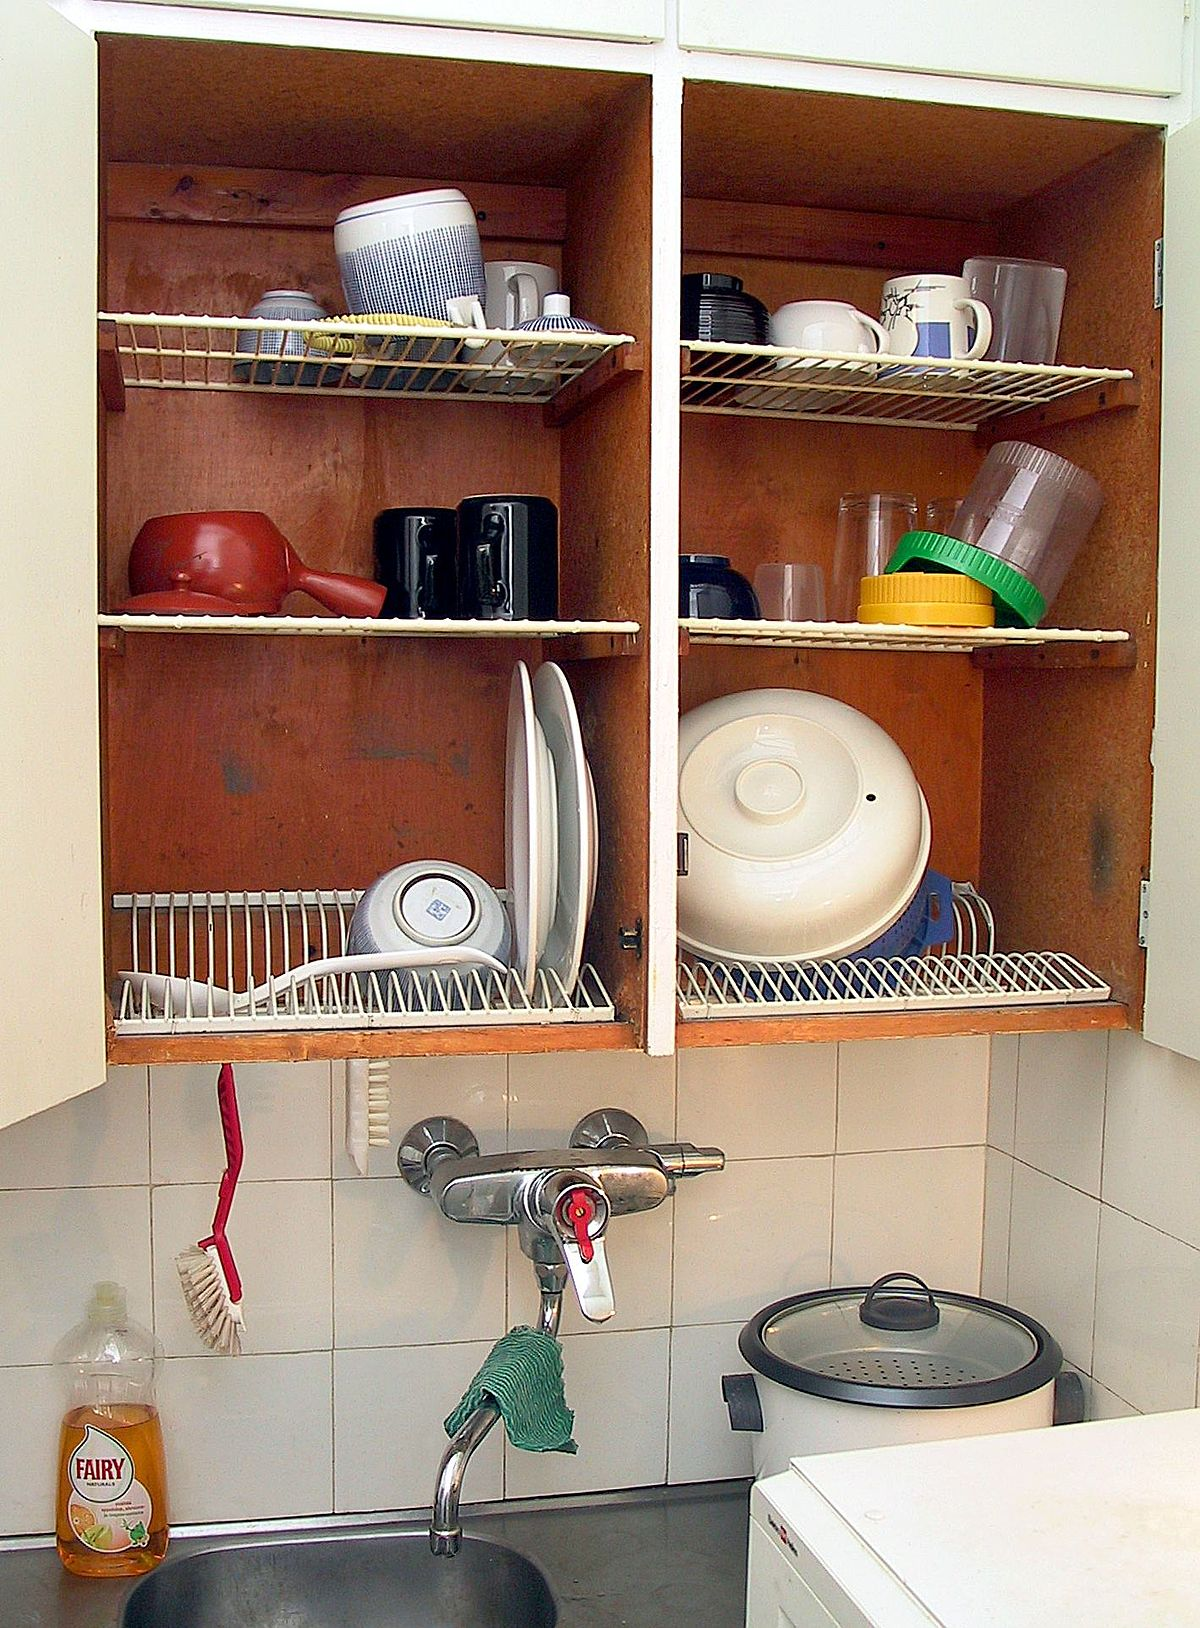 Dish drying cabinet - Wikipedia